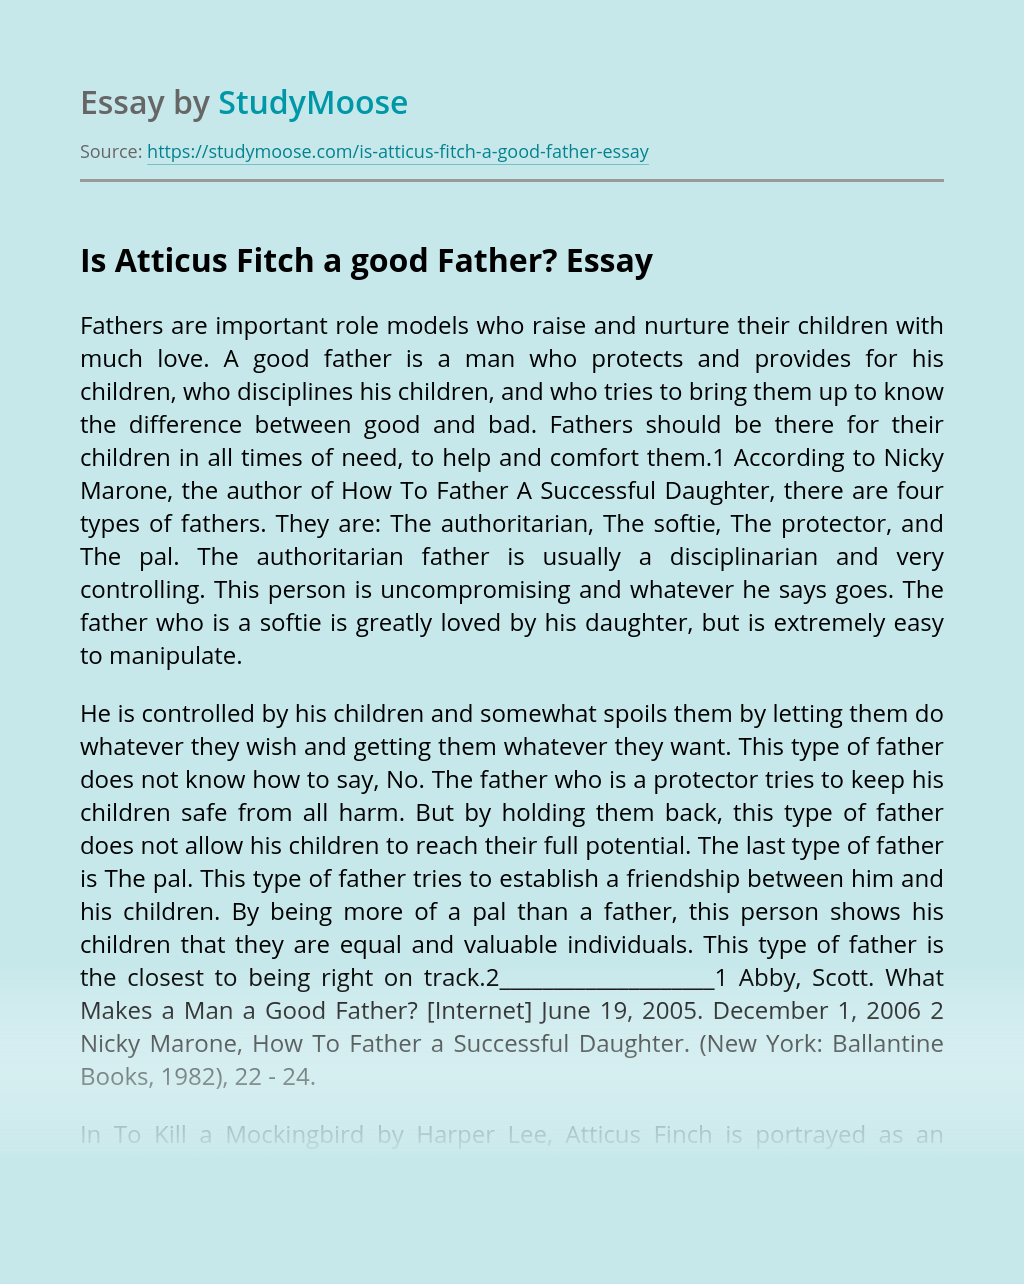 Is Atticus Fitch a good Father